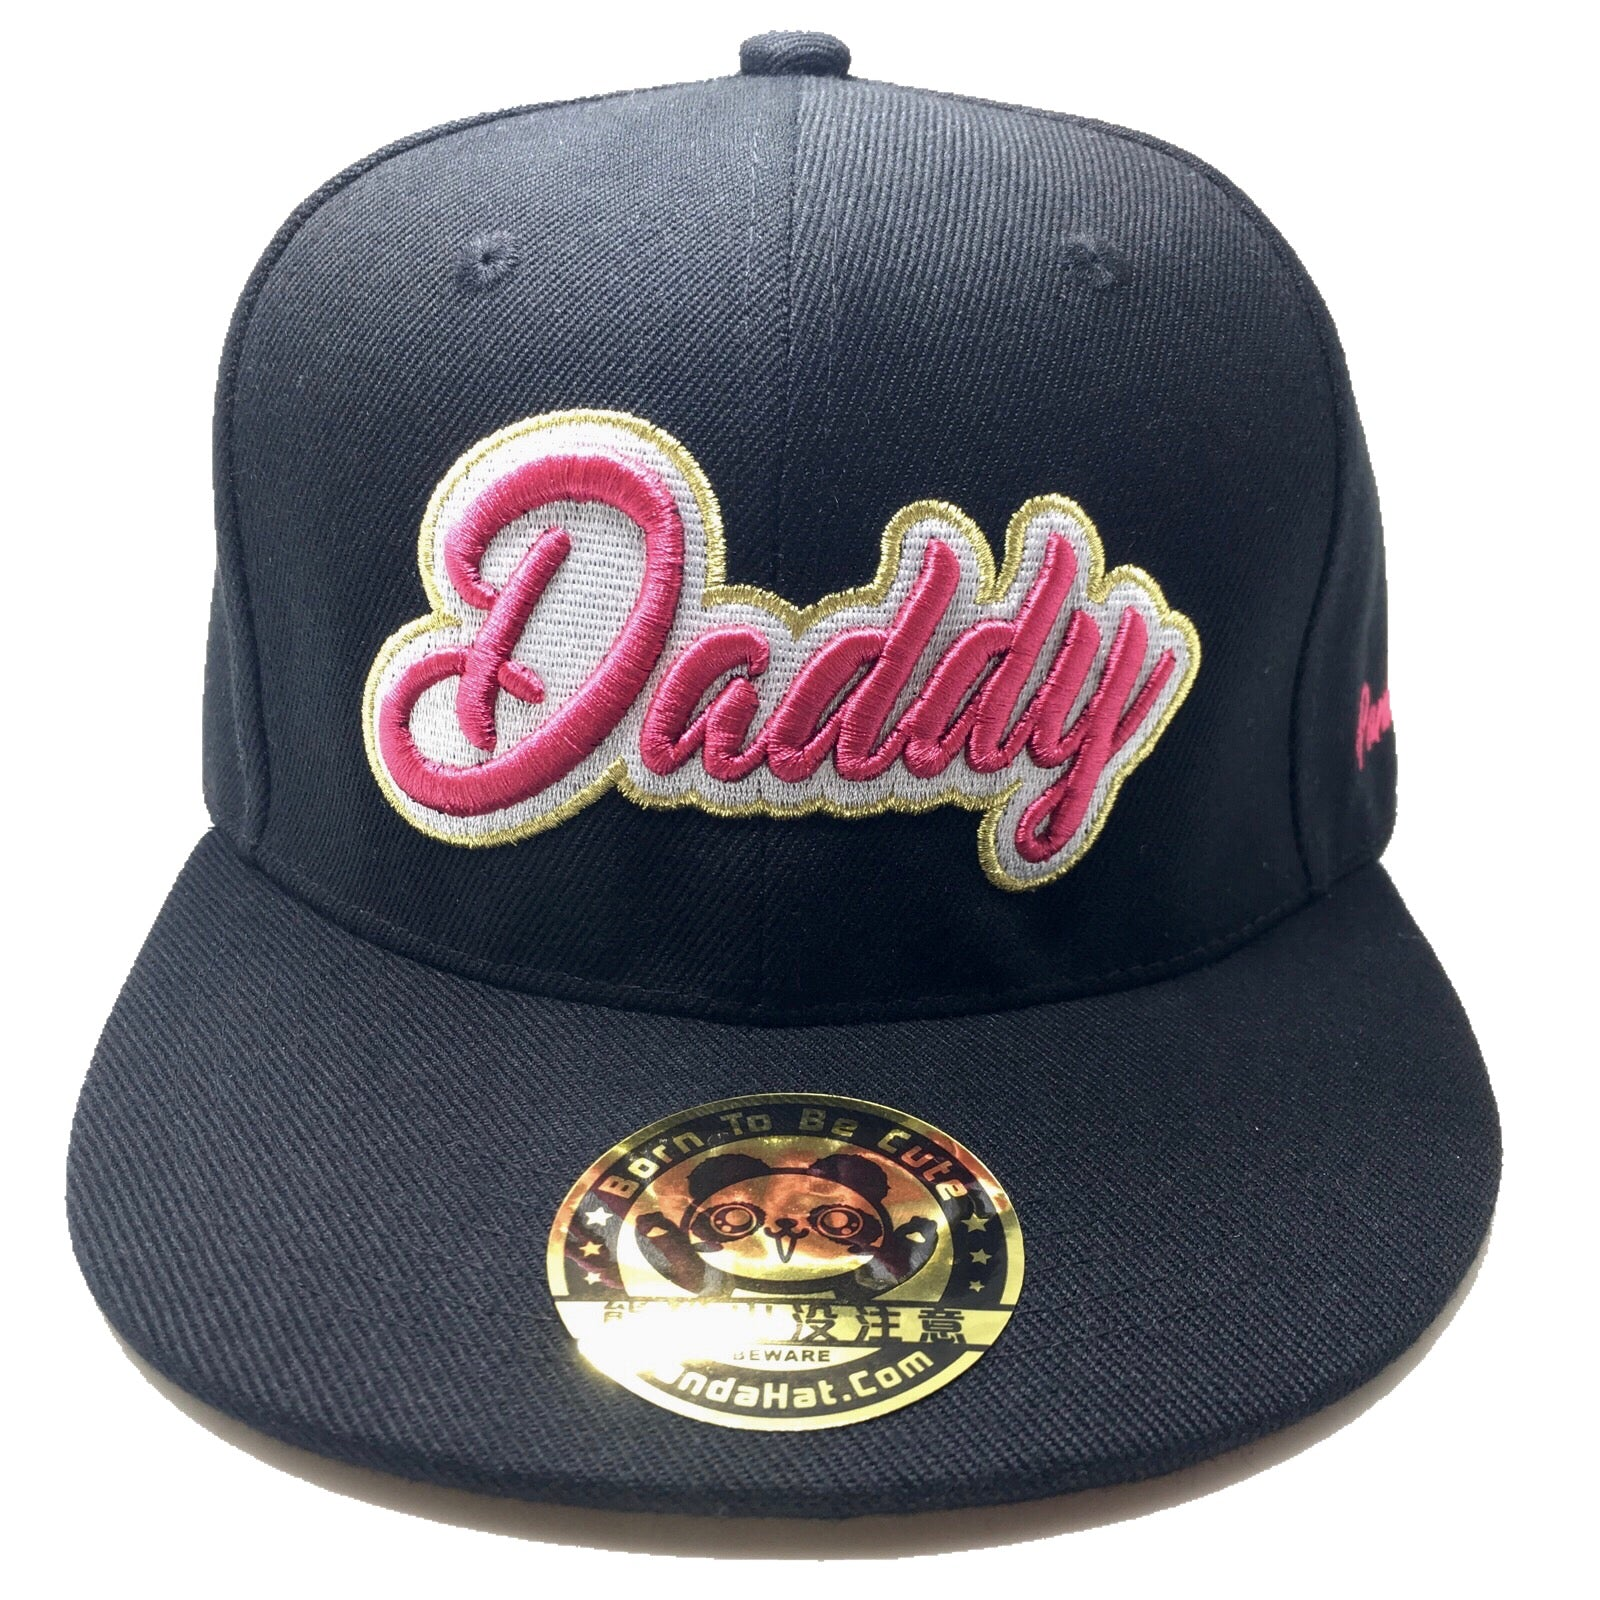 Daddy Cursive 3d Puff Embroidery Hat Pandahat